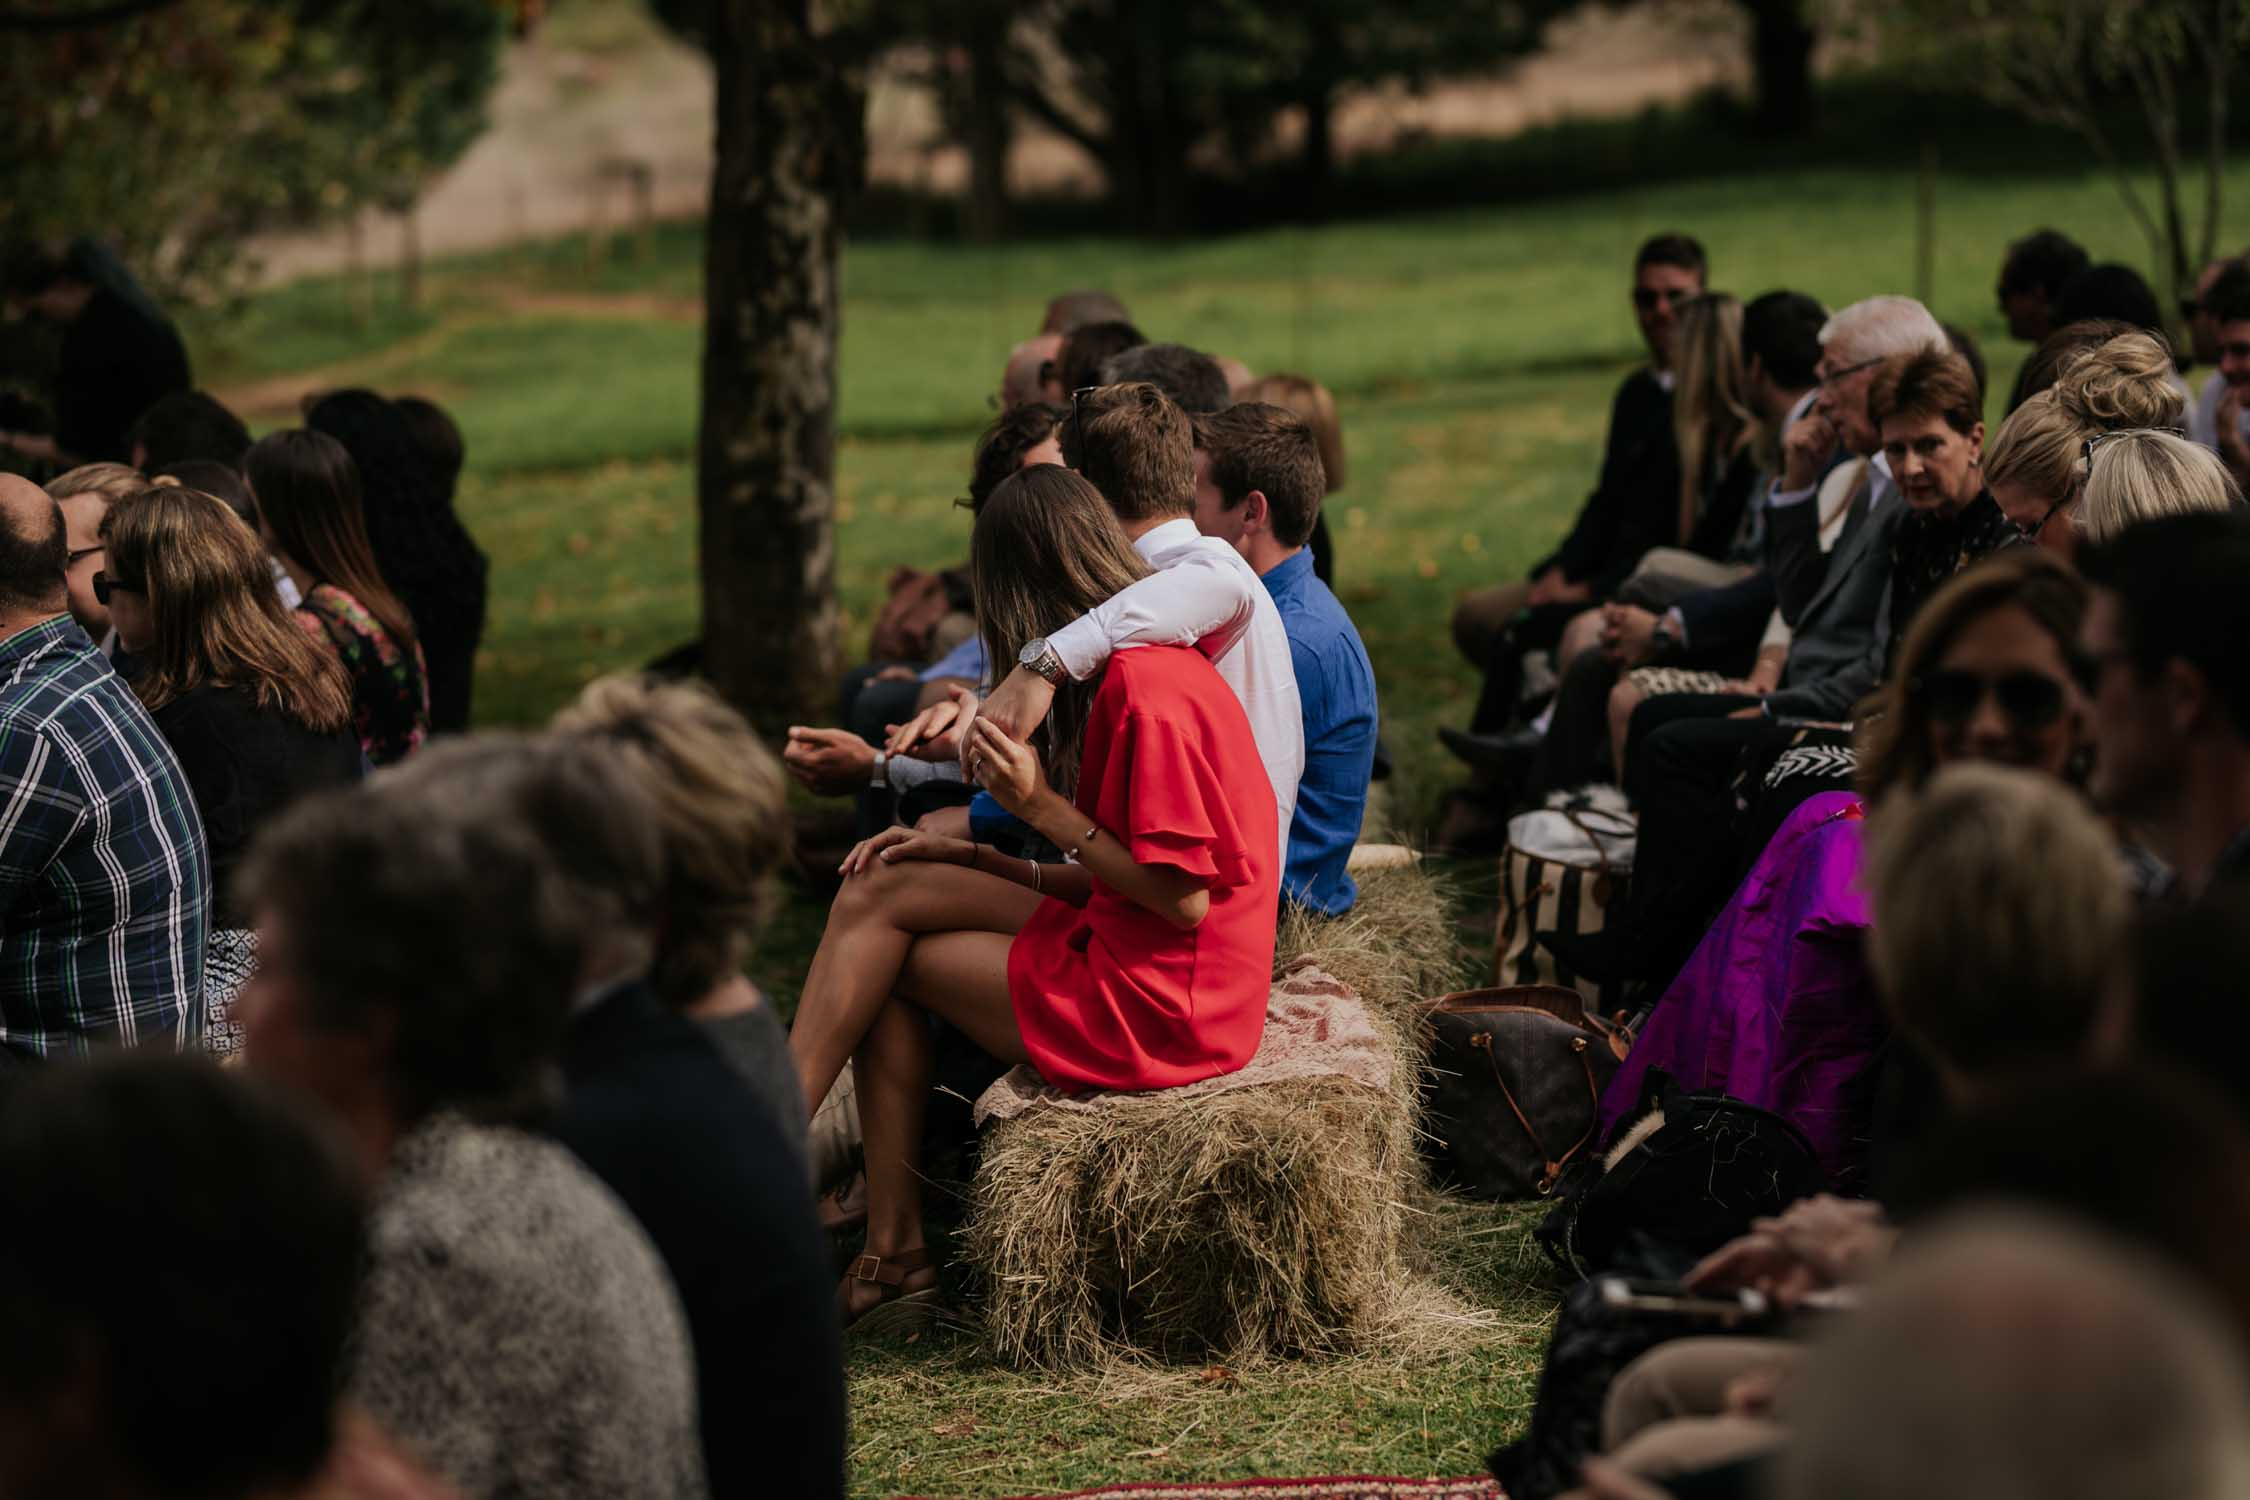 Guests sitting on hay bales on farm during the wedding ceremony on dairy farm.